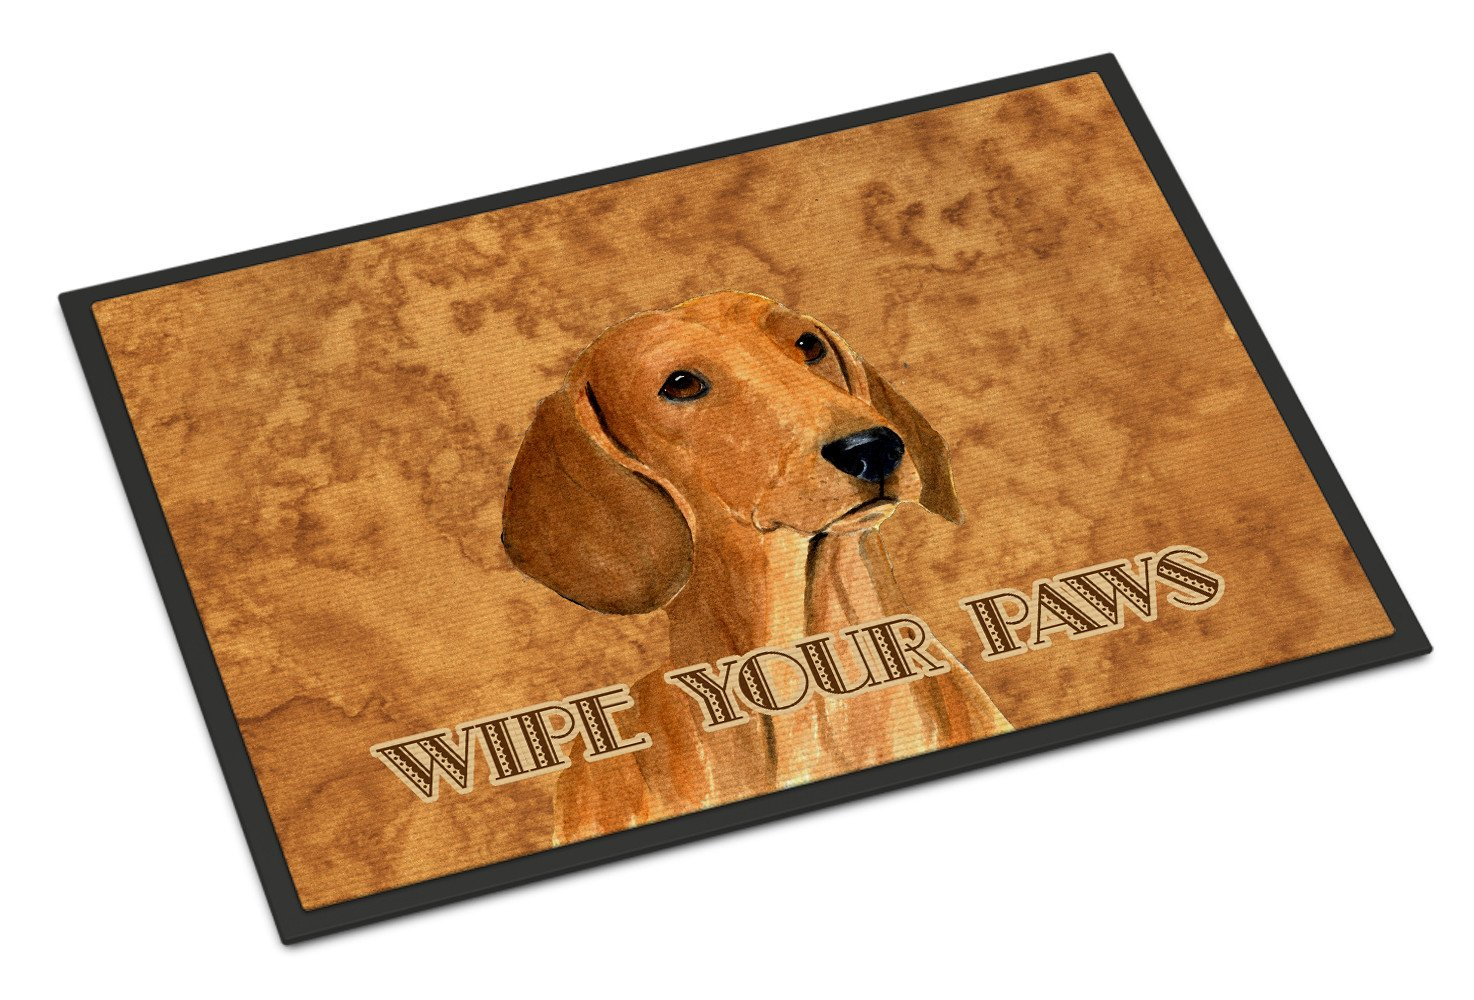 Red Dachshund Wipe your Paws Indoor or Outdoor Mat 18x27 SS4895MAT - the-store.com